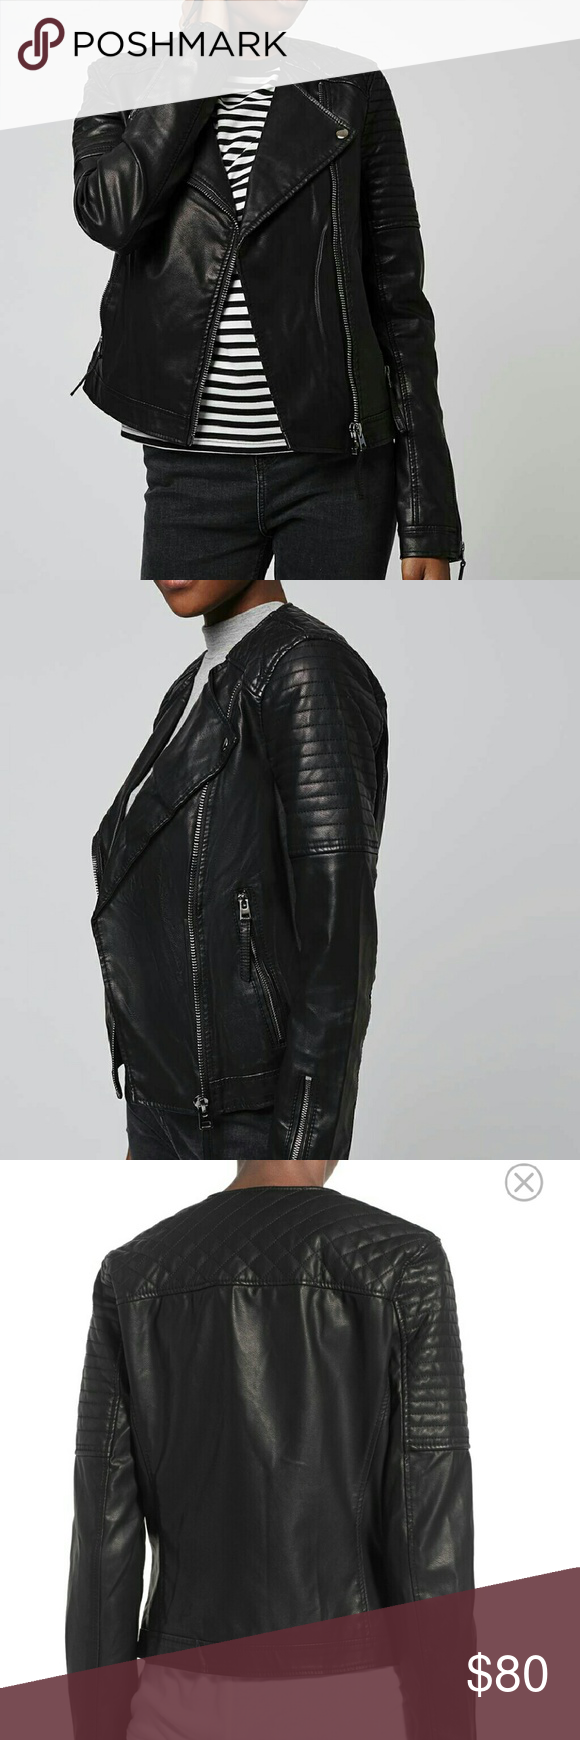 Topshop Quilted Faux Leather Biker Jacket Brand new. NWT.  4P US (Fits 0-2) Topshop Jackets & Coats